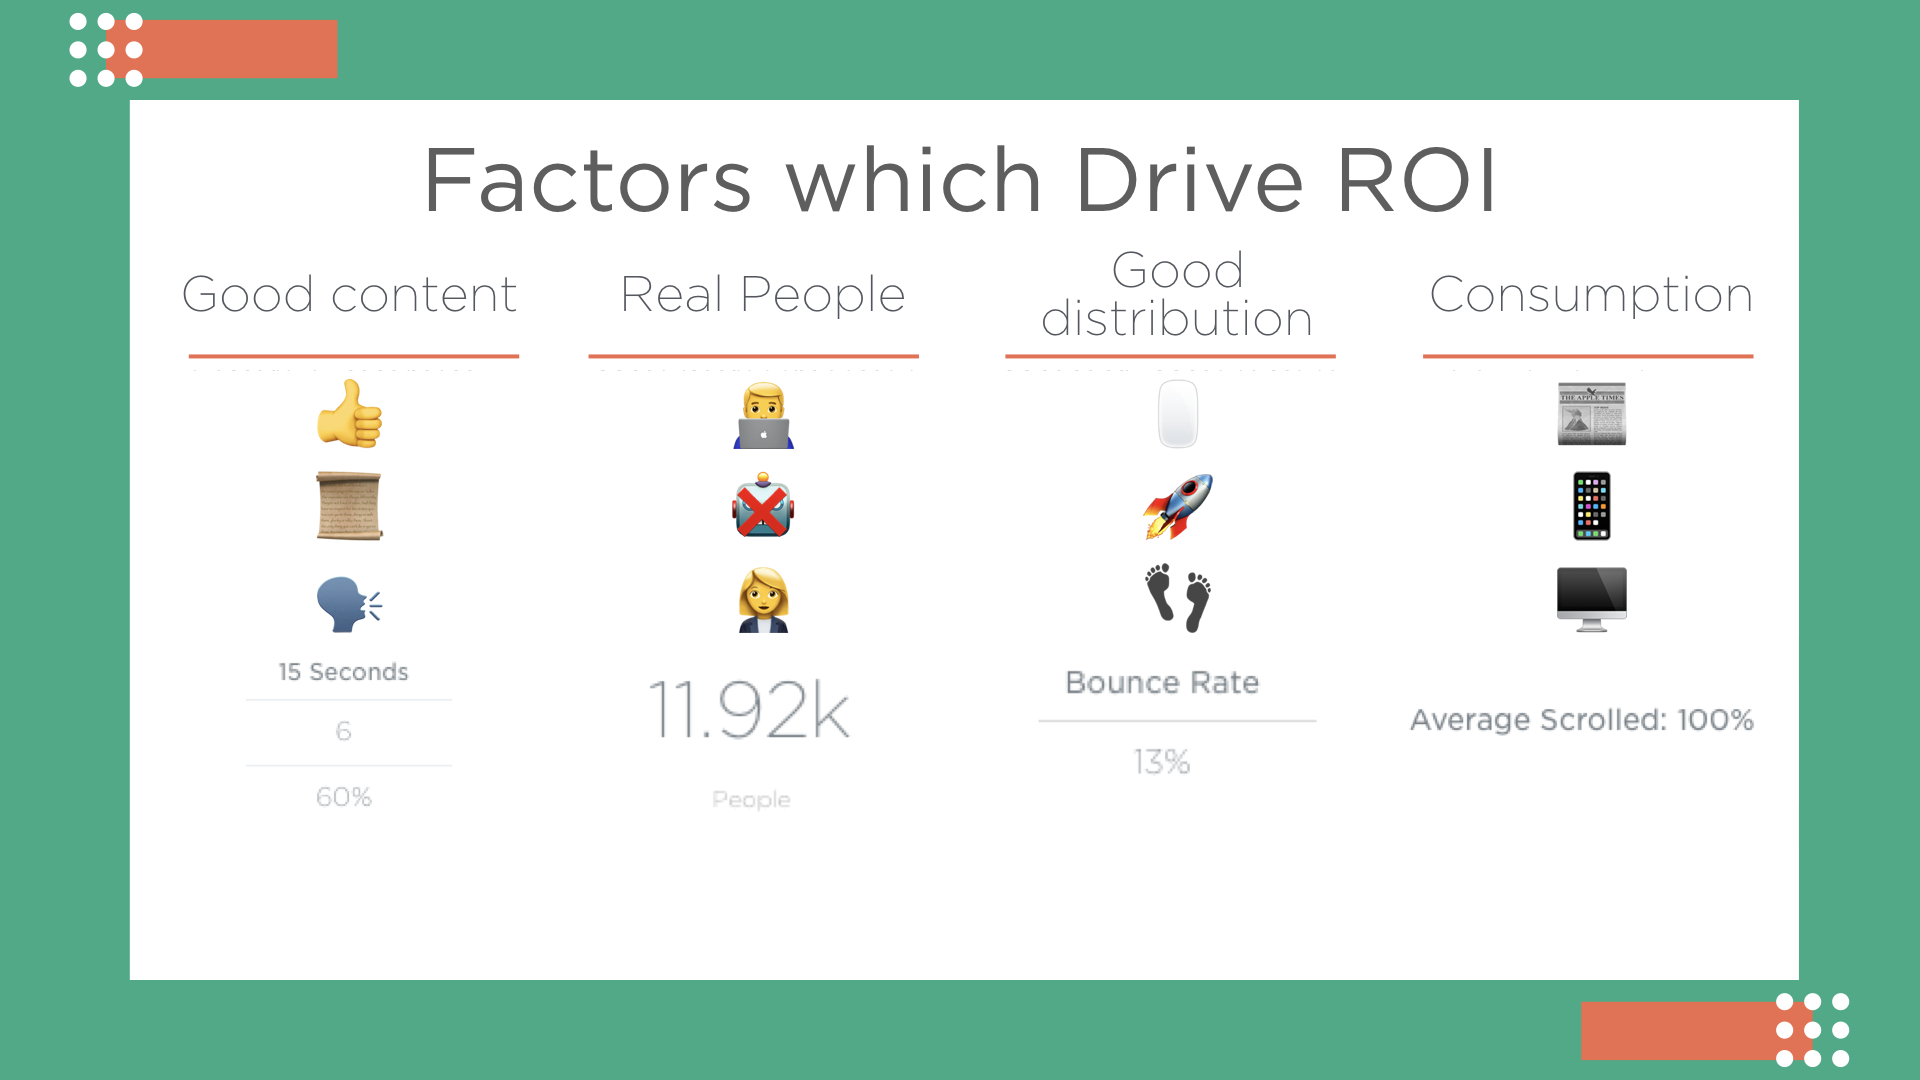 Factors which drive ROI